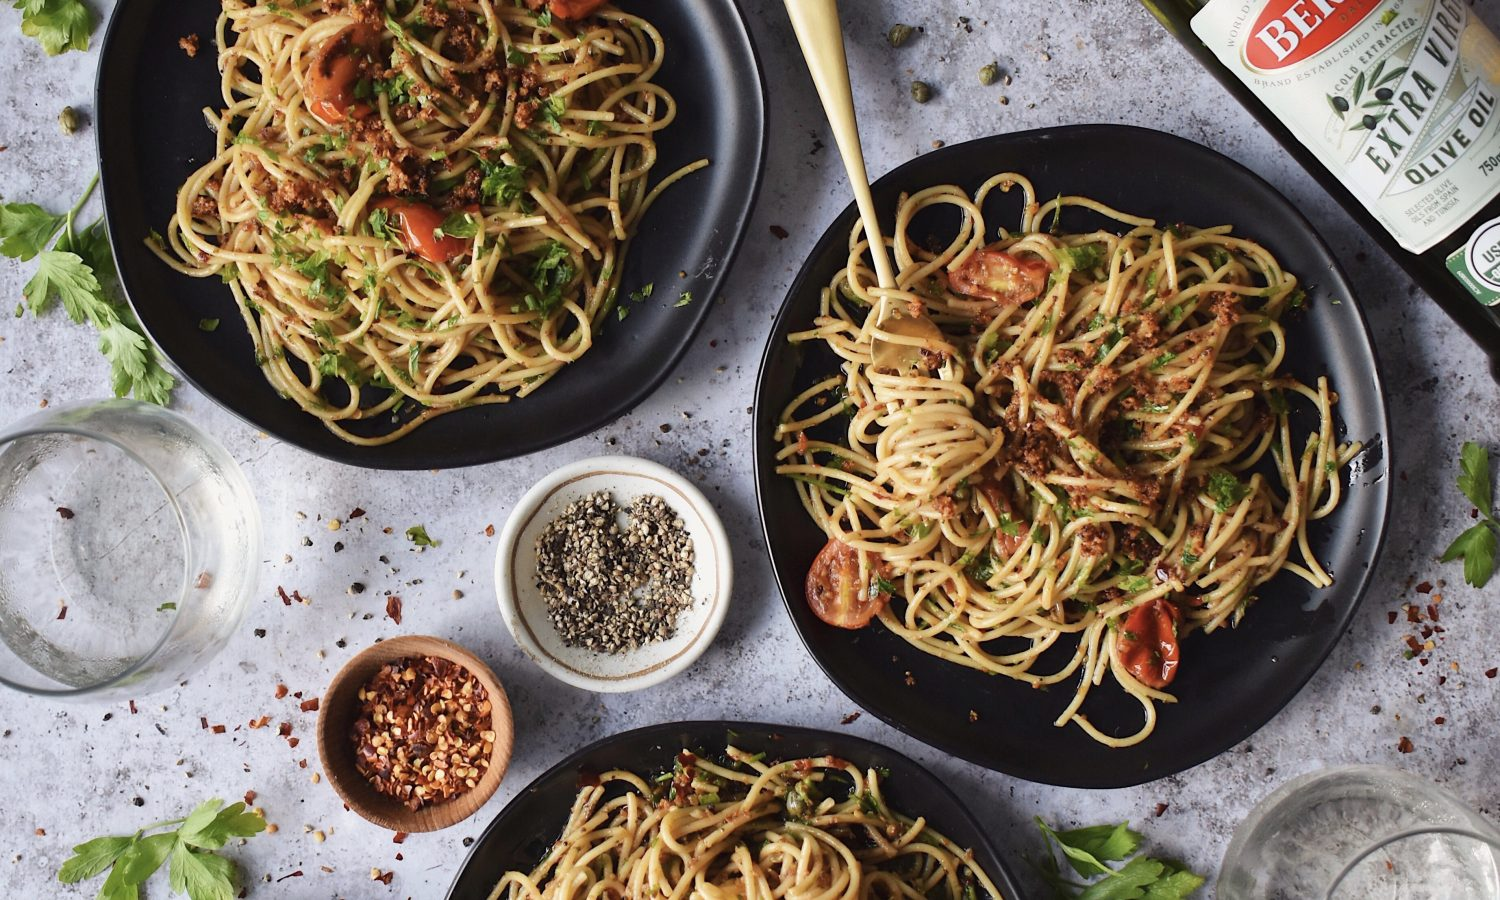 Garlic Anchovy Pasta with Bertolli Olive Oil